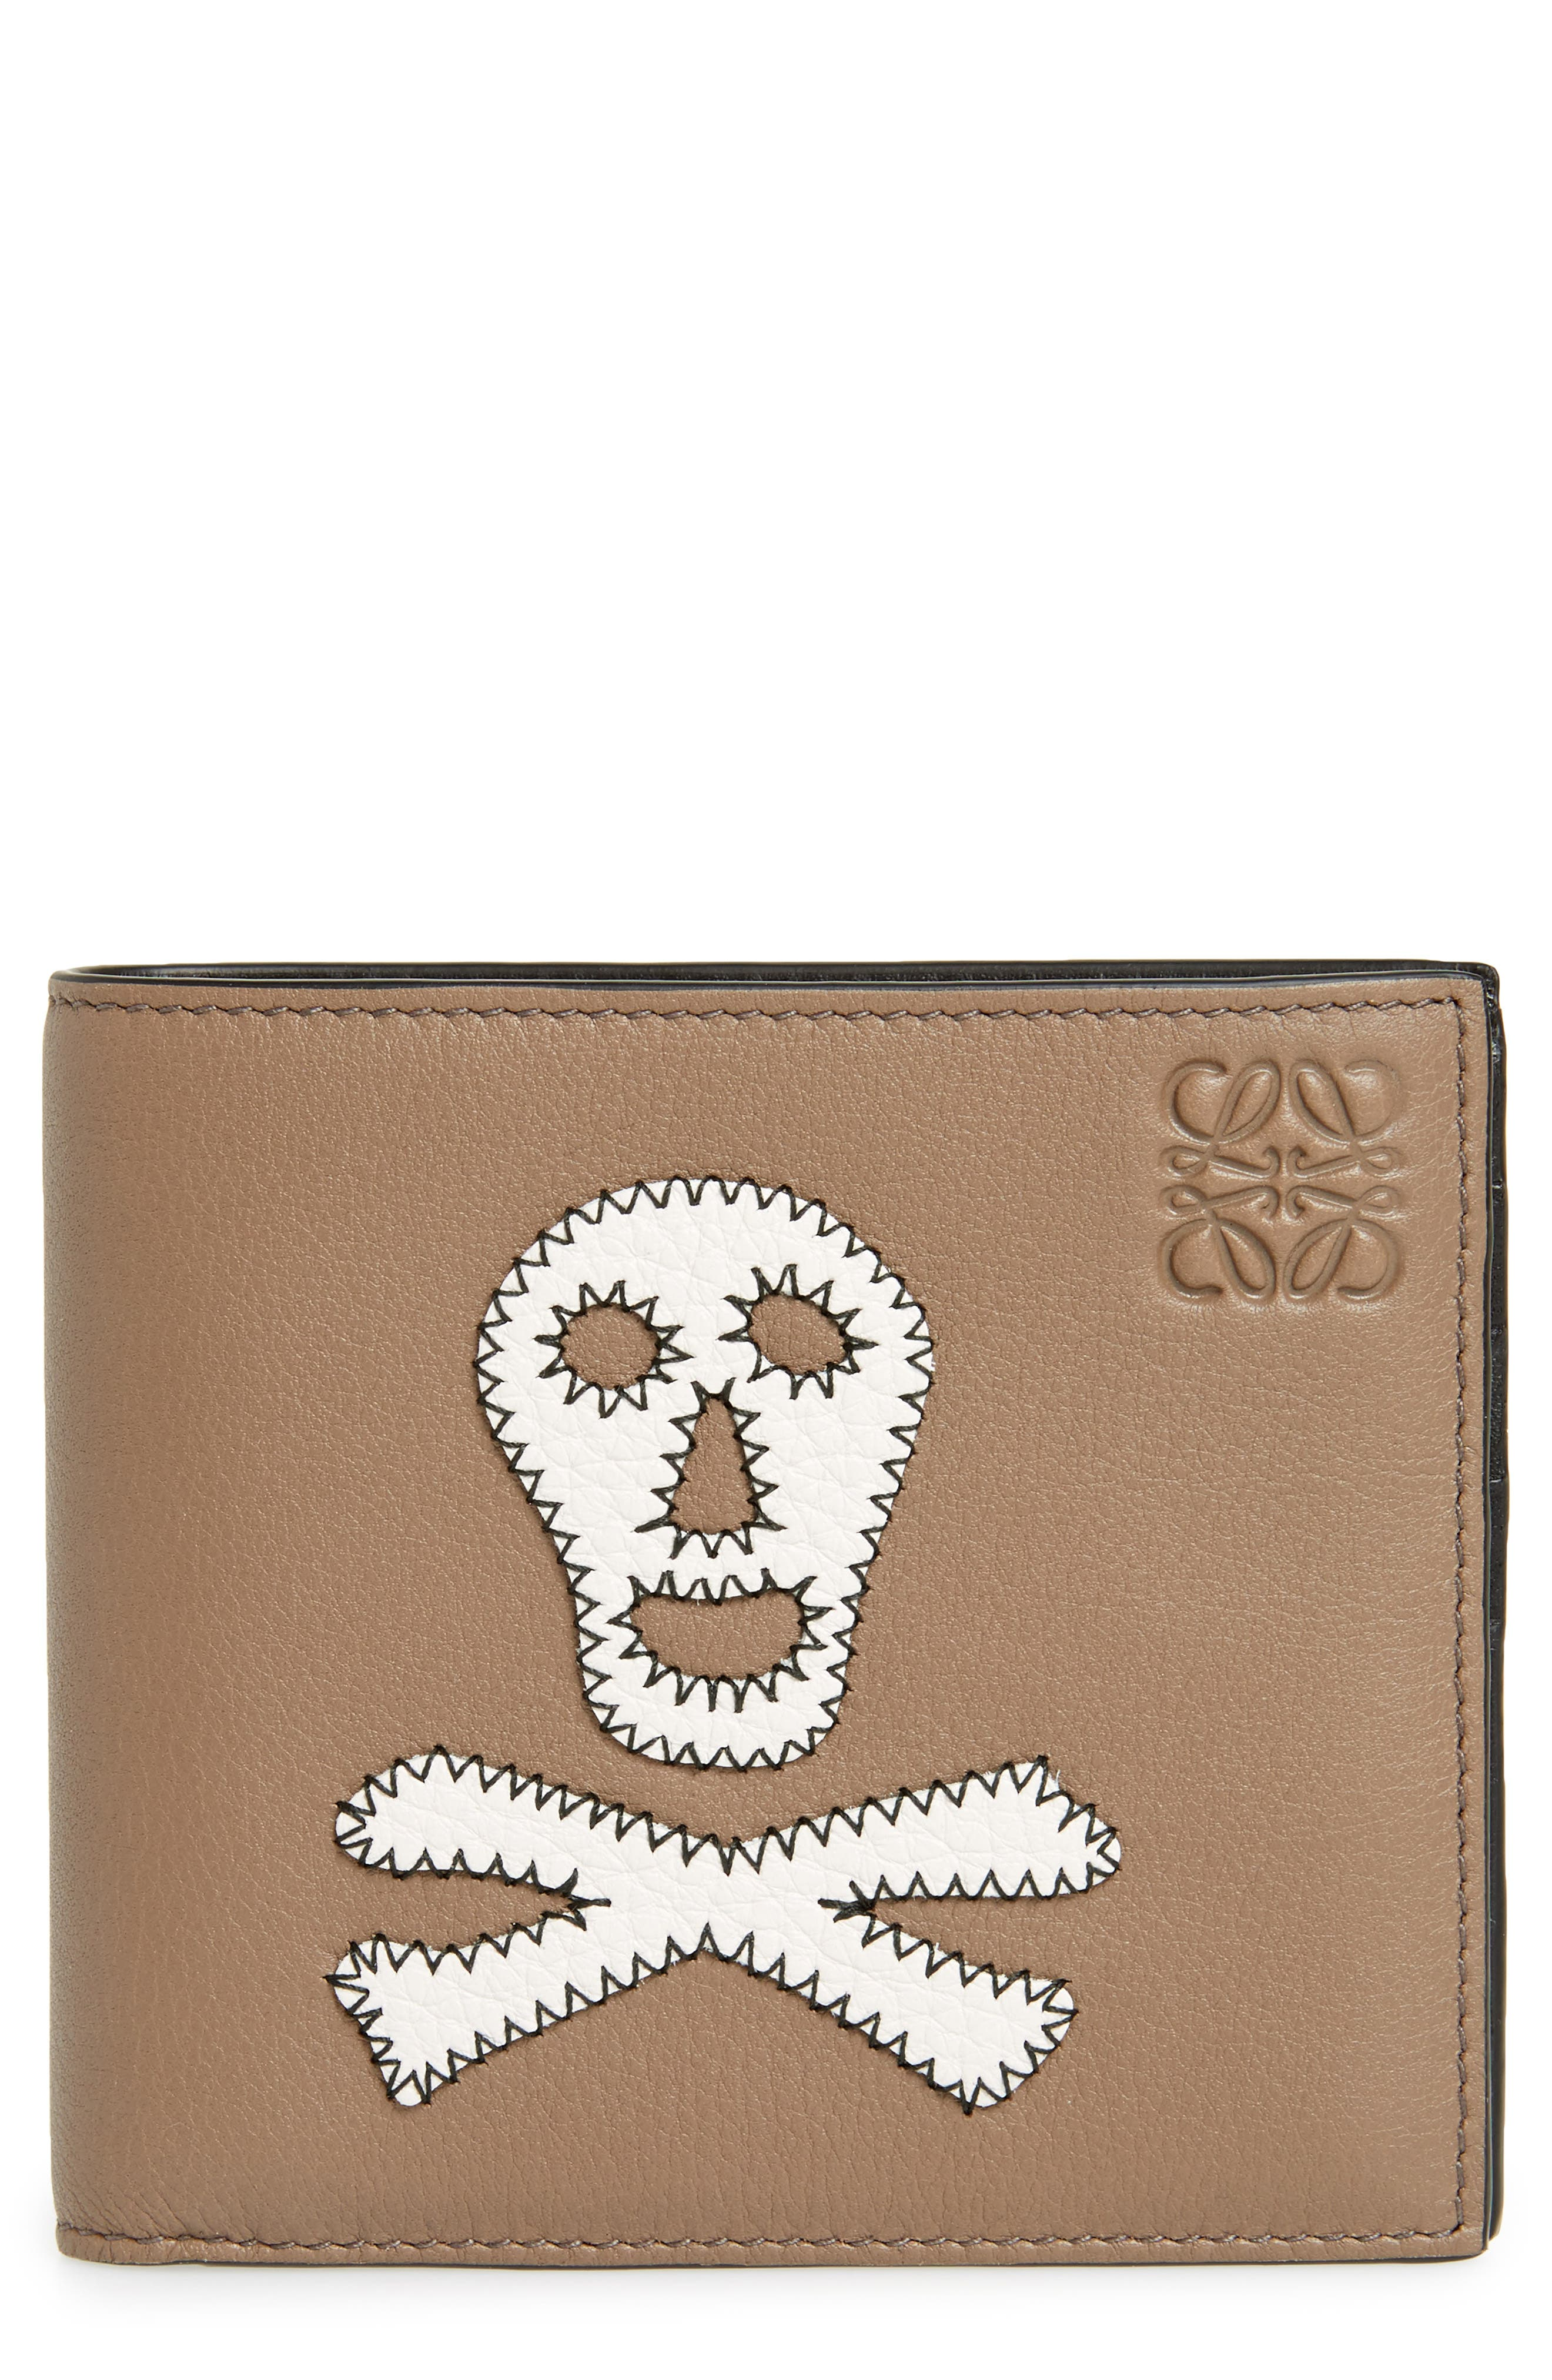 Skull Leather Bifold Wallet,                         Main,                         color, Dark Taupe/ Tan/ White